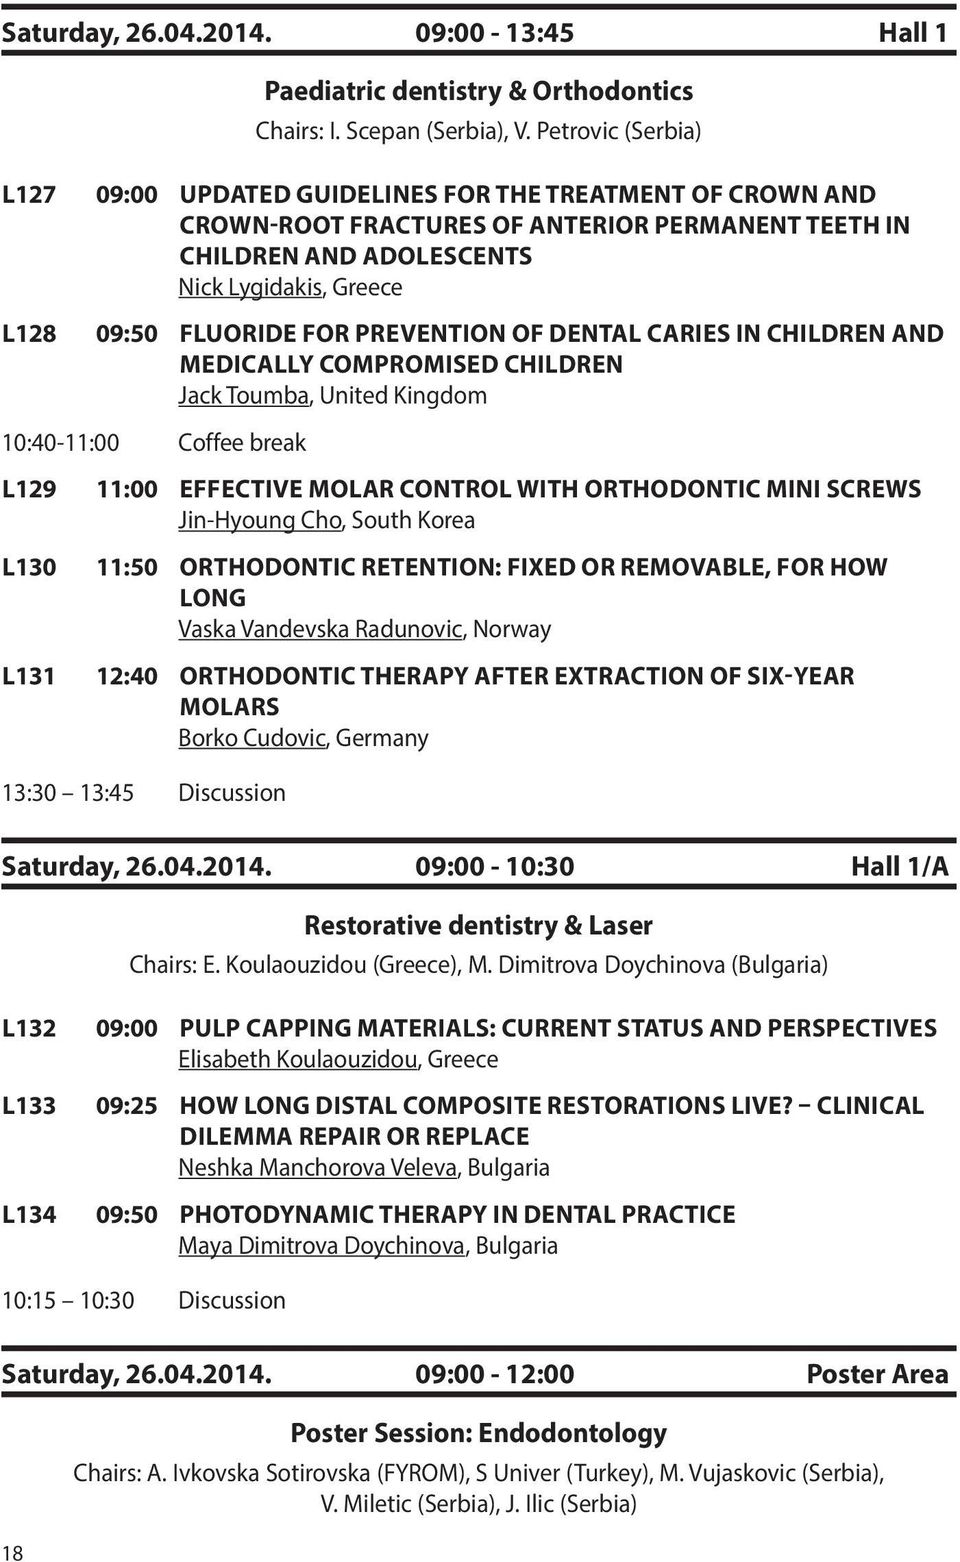 FOR PREVENTION OF DENTAL CARIES IN CHILDREN AND MEDICALLY COMPROMISED CHILDREN Jack Toumba, United Kingdom 10:40-11:00 Coffee break L129 11:00 EFFECTIVE MOLAR CONTROL WITH ORTHODONTIC MINI SCREWS